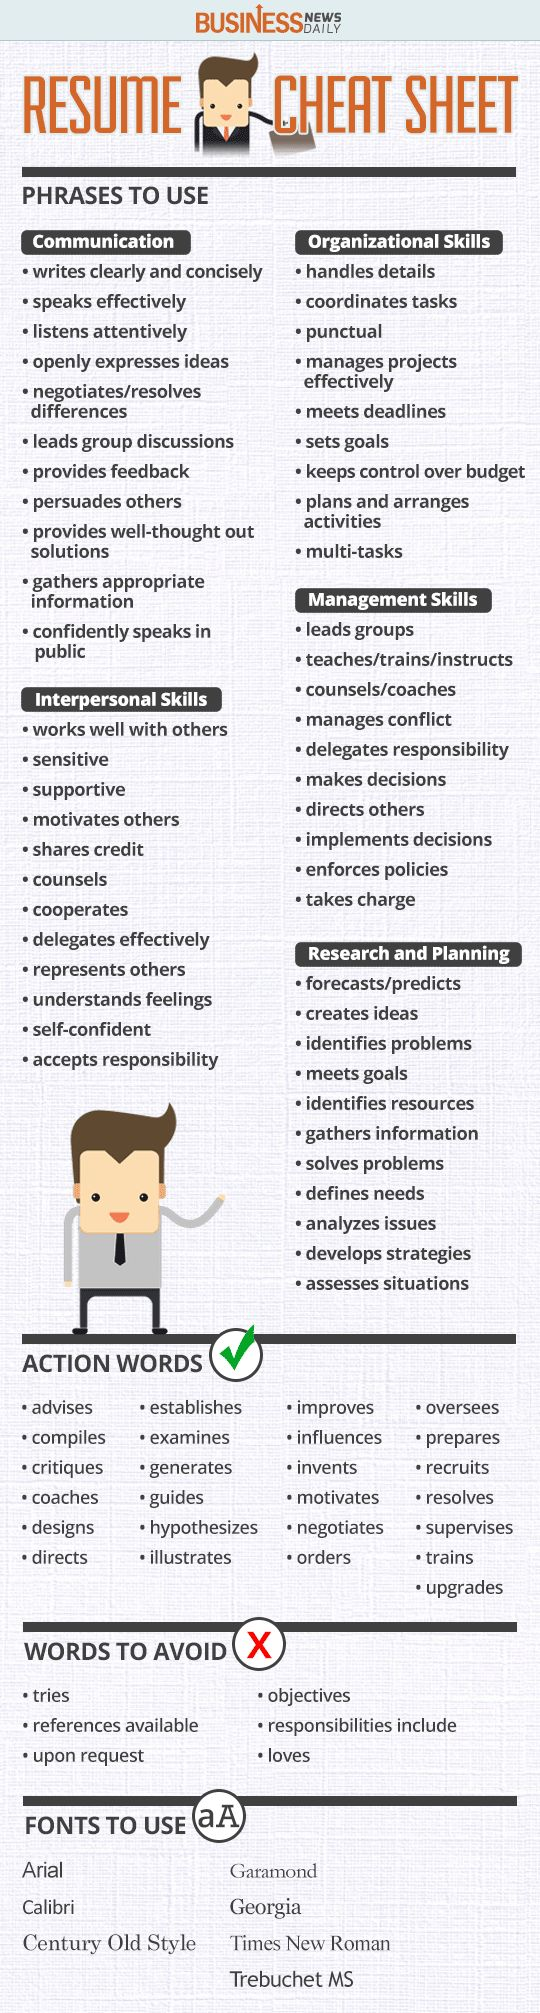 Opposenewapstandardsus  Pleasant  Ideas About Resume On Pinterest  Cv Format Resume Cv And  With Exquisite Resume Cheat Sheet Infographic Andrews Almost Done With A Complete Unit On Employment Which With Delightful Best Resume Objectives Also Server Resume Examples In Addition List Of Skills For A Resume And Resume Job Objective As Well As Office Manager Resume Sample Additionally Strong Resume Verbs From Pinterestcom With Opposenewapstandardsus  Exquisite  Ideas About Resume On Pinterest  Cv Format Resume Cv And  With Delightful Resume Cheat Sheet Infographic Andrews Almost Done With A Complete Unit On Employment Which And Pleasant Best Resume Objectives Also Server Resume Examples In Addition List Of Skills For A Resume From Pinterestcom